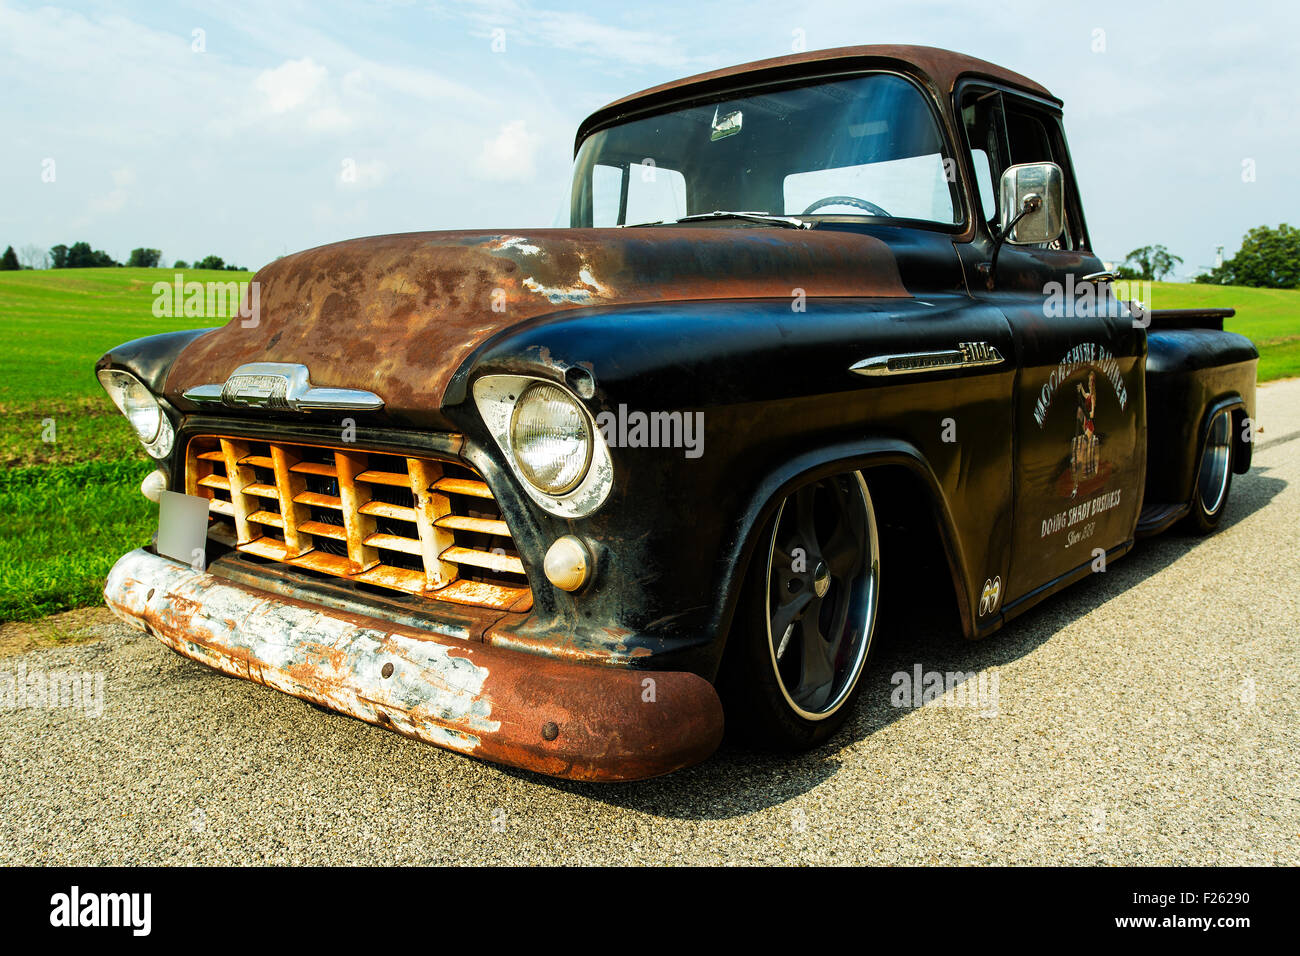 1956 Chevrolet Custom Rat Rod Pickup Truck Stock Photo: 87414684 - Alamy